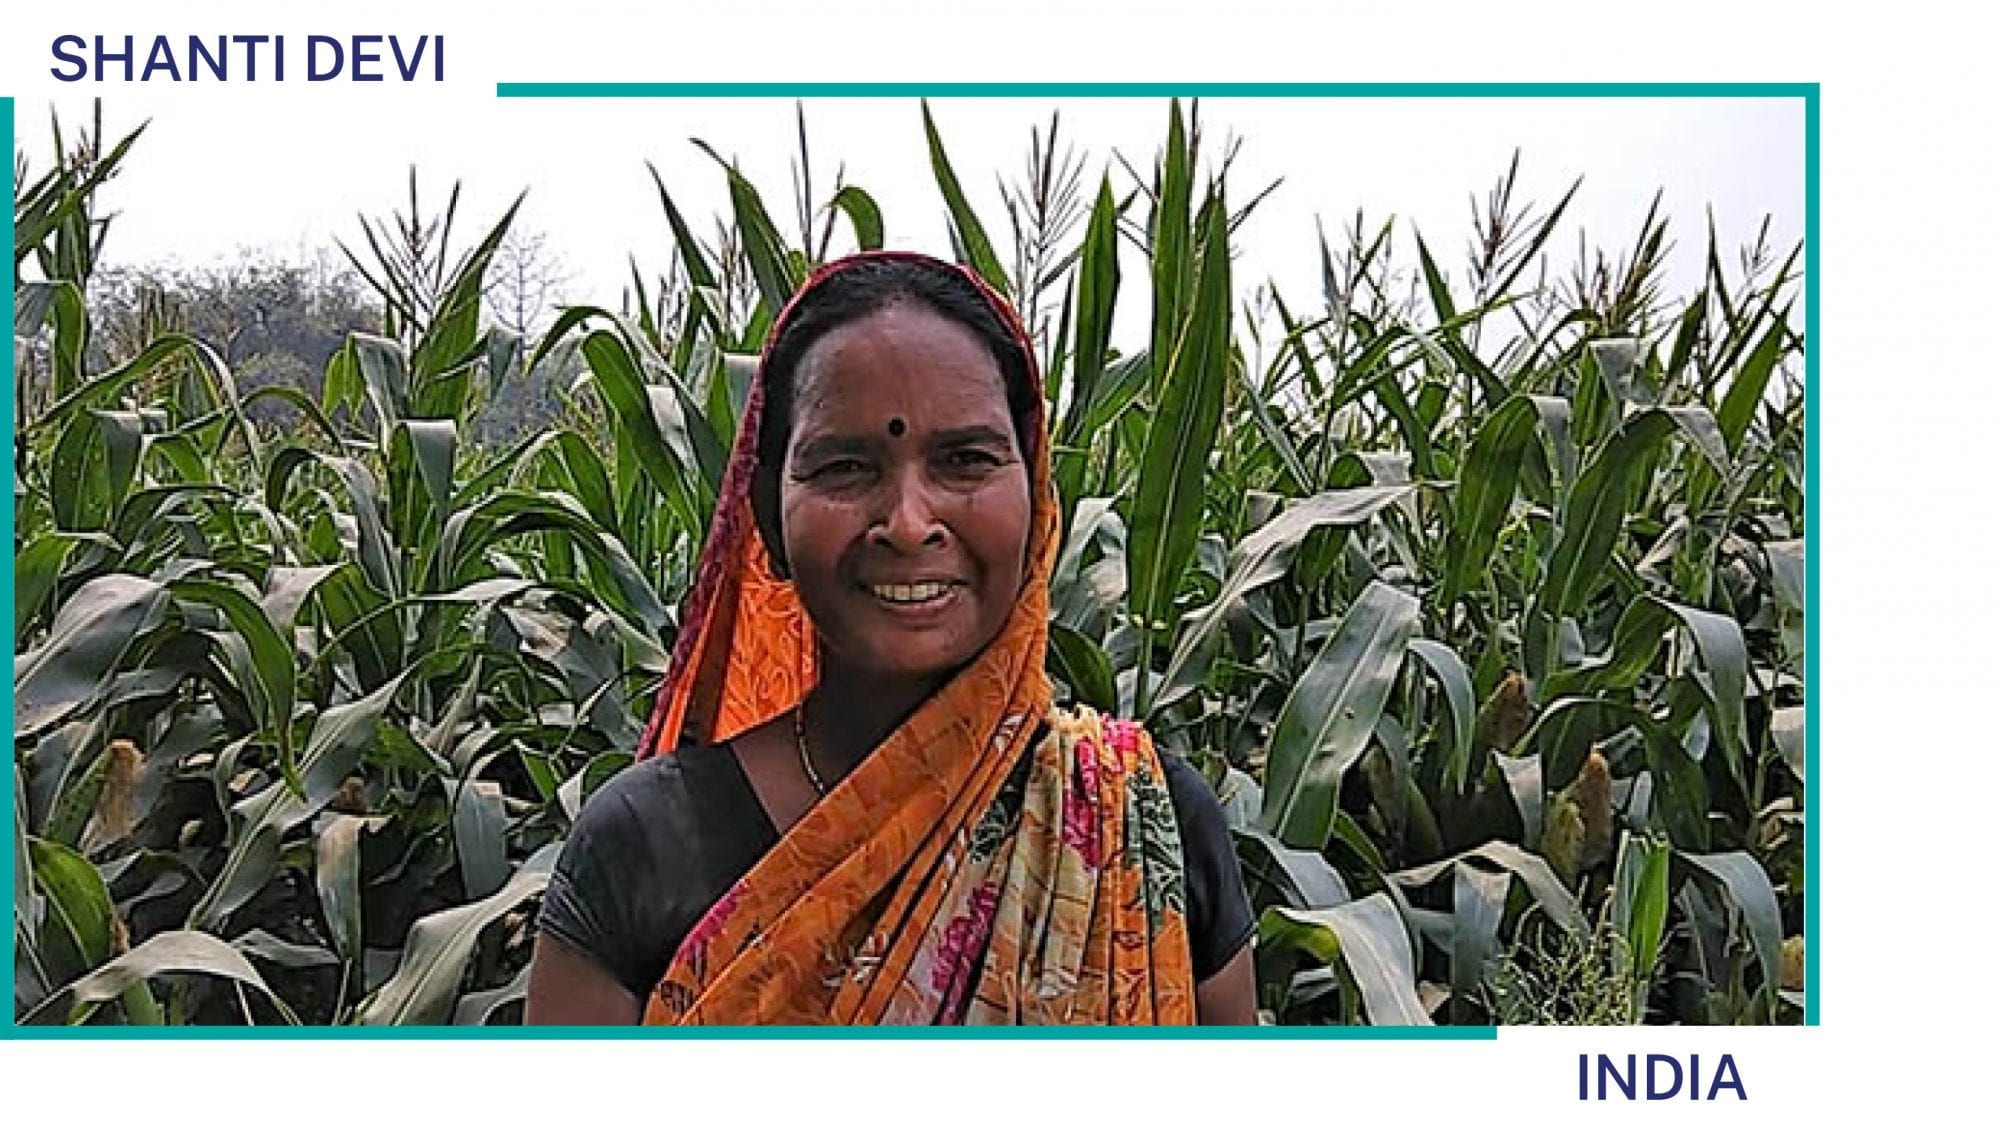 Shanti Devi stands on her farm in India